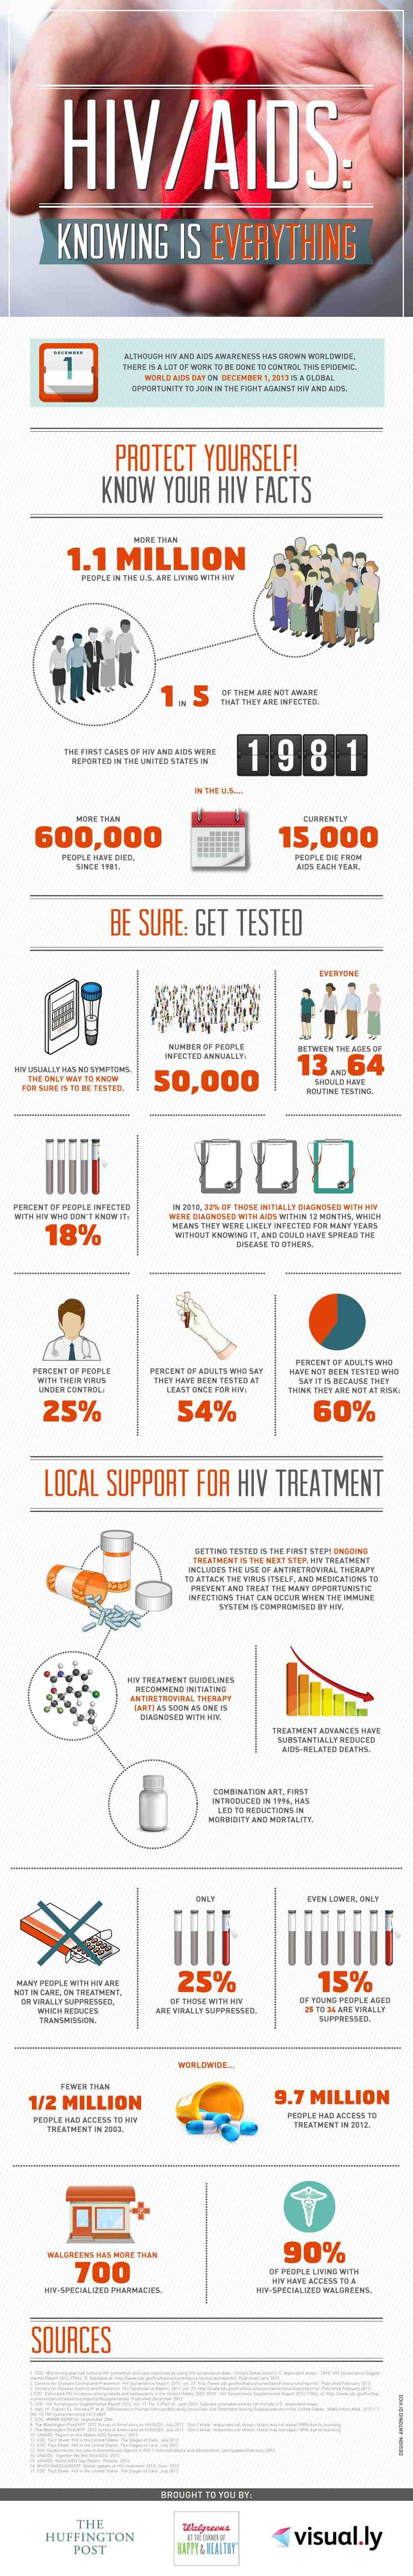 HIV/AIDS: Knowing Is Everything                                                                                                                                                                                 More